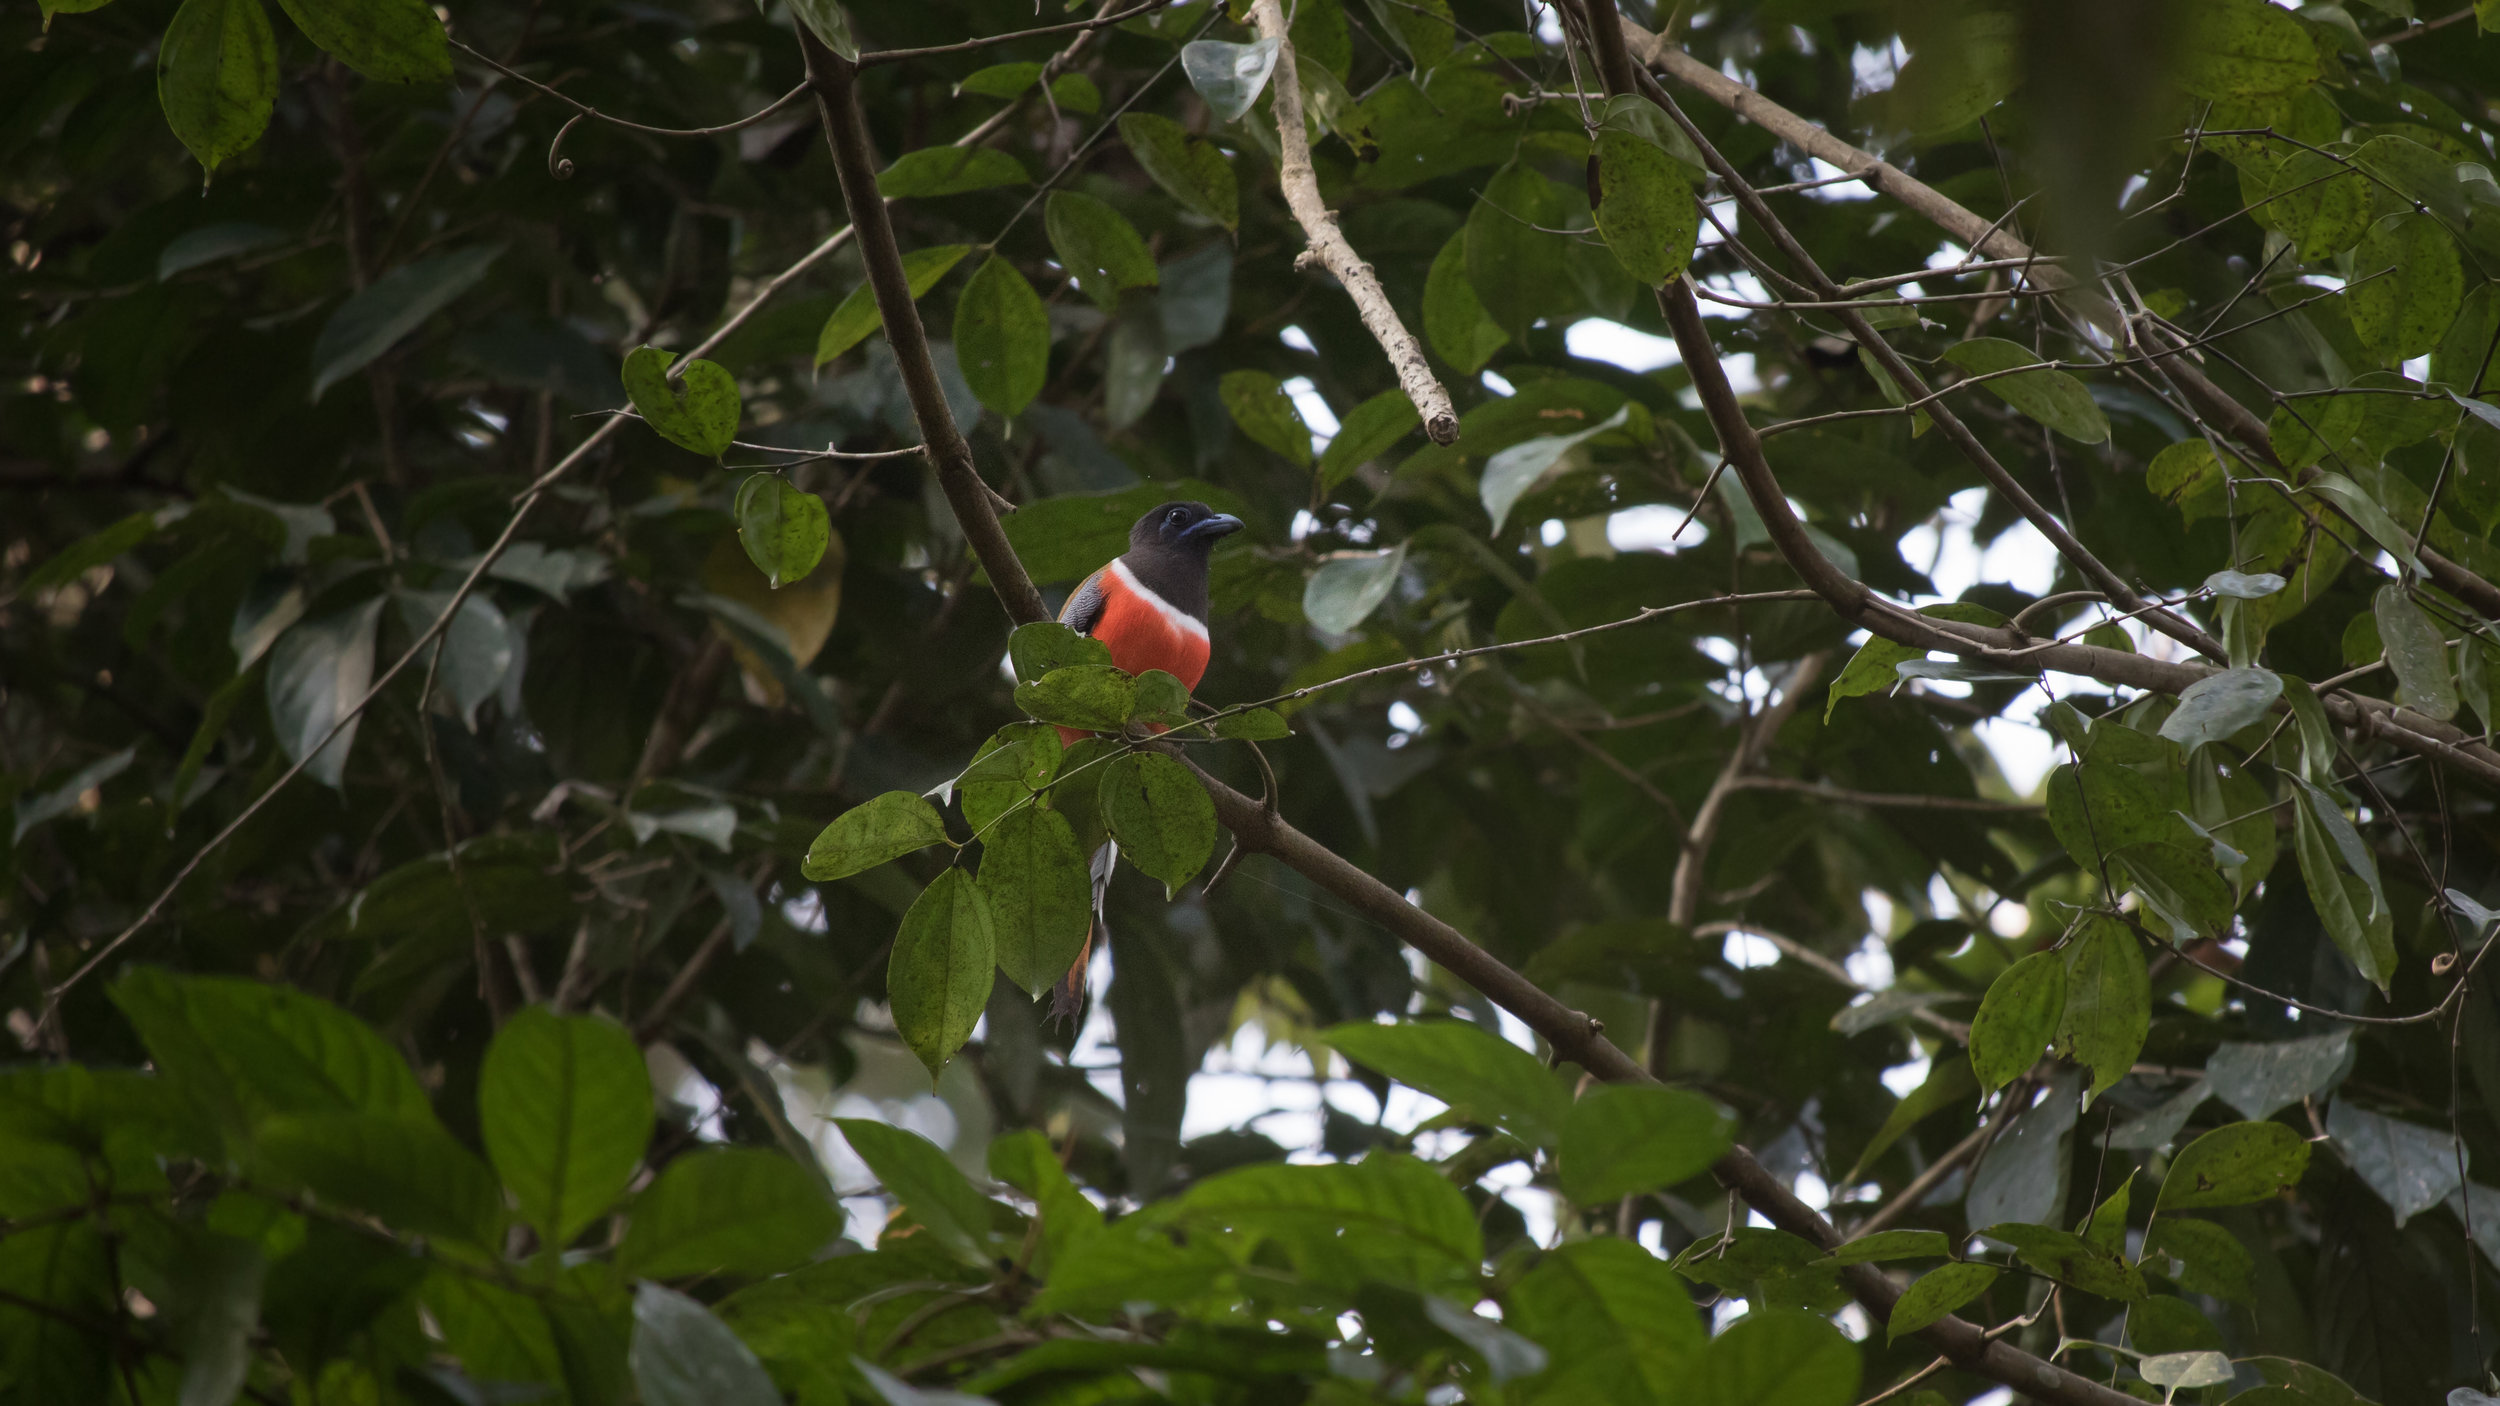 Malabar Trogon (Harpactes fasciatus) in the Thattekad Bird Sanctuary, Kerala, India. February 2015. Not baited. Called once by our guide.